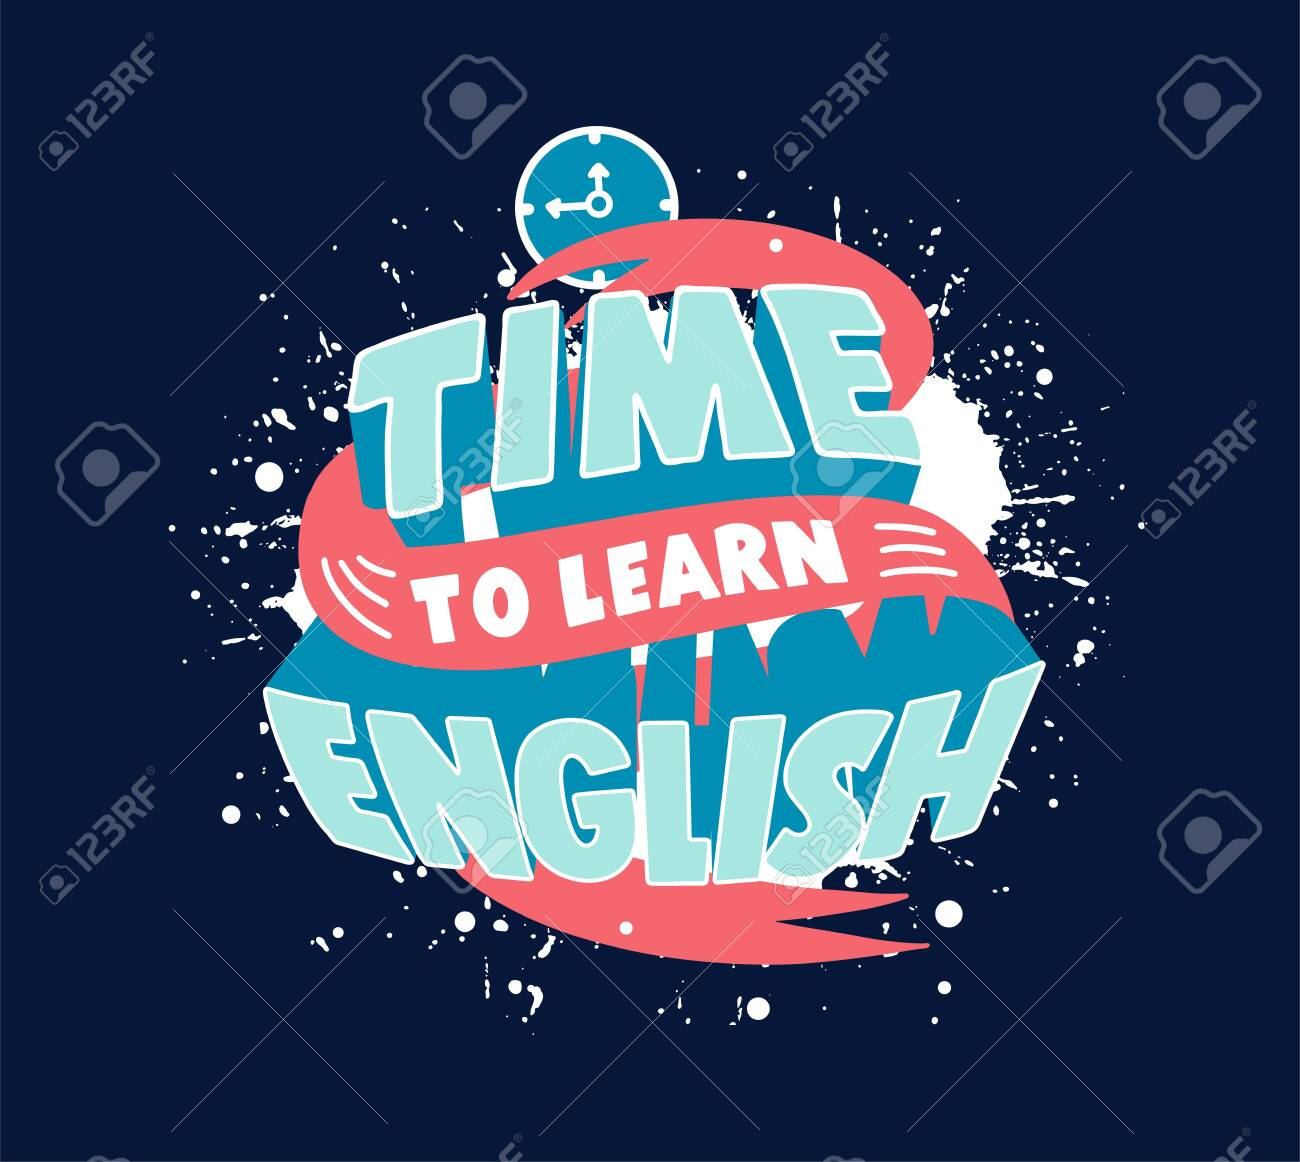 Study English phrase. Creative poster, web banner for foreign language school - 134763771